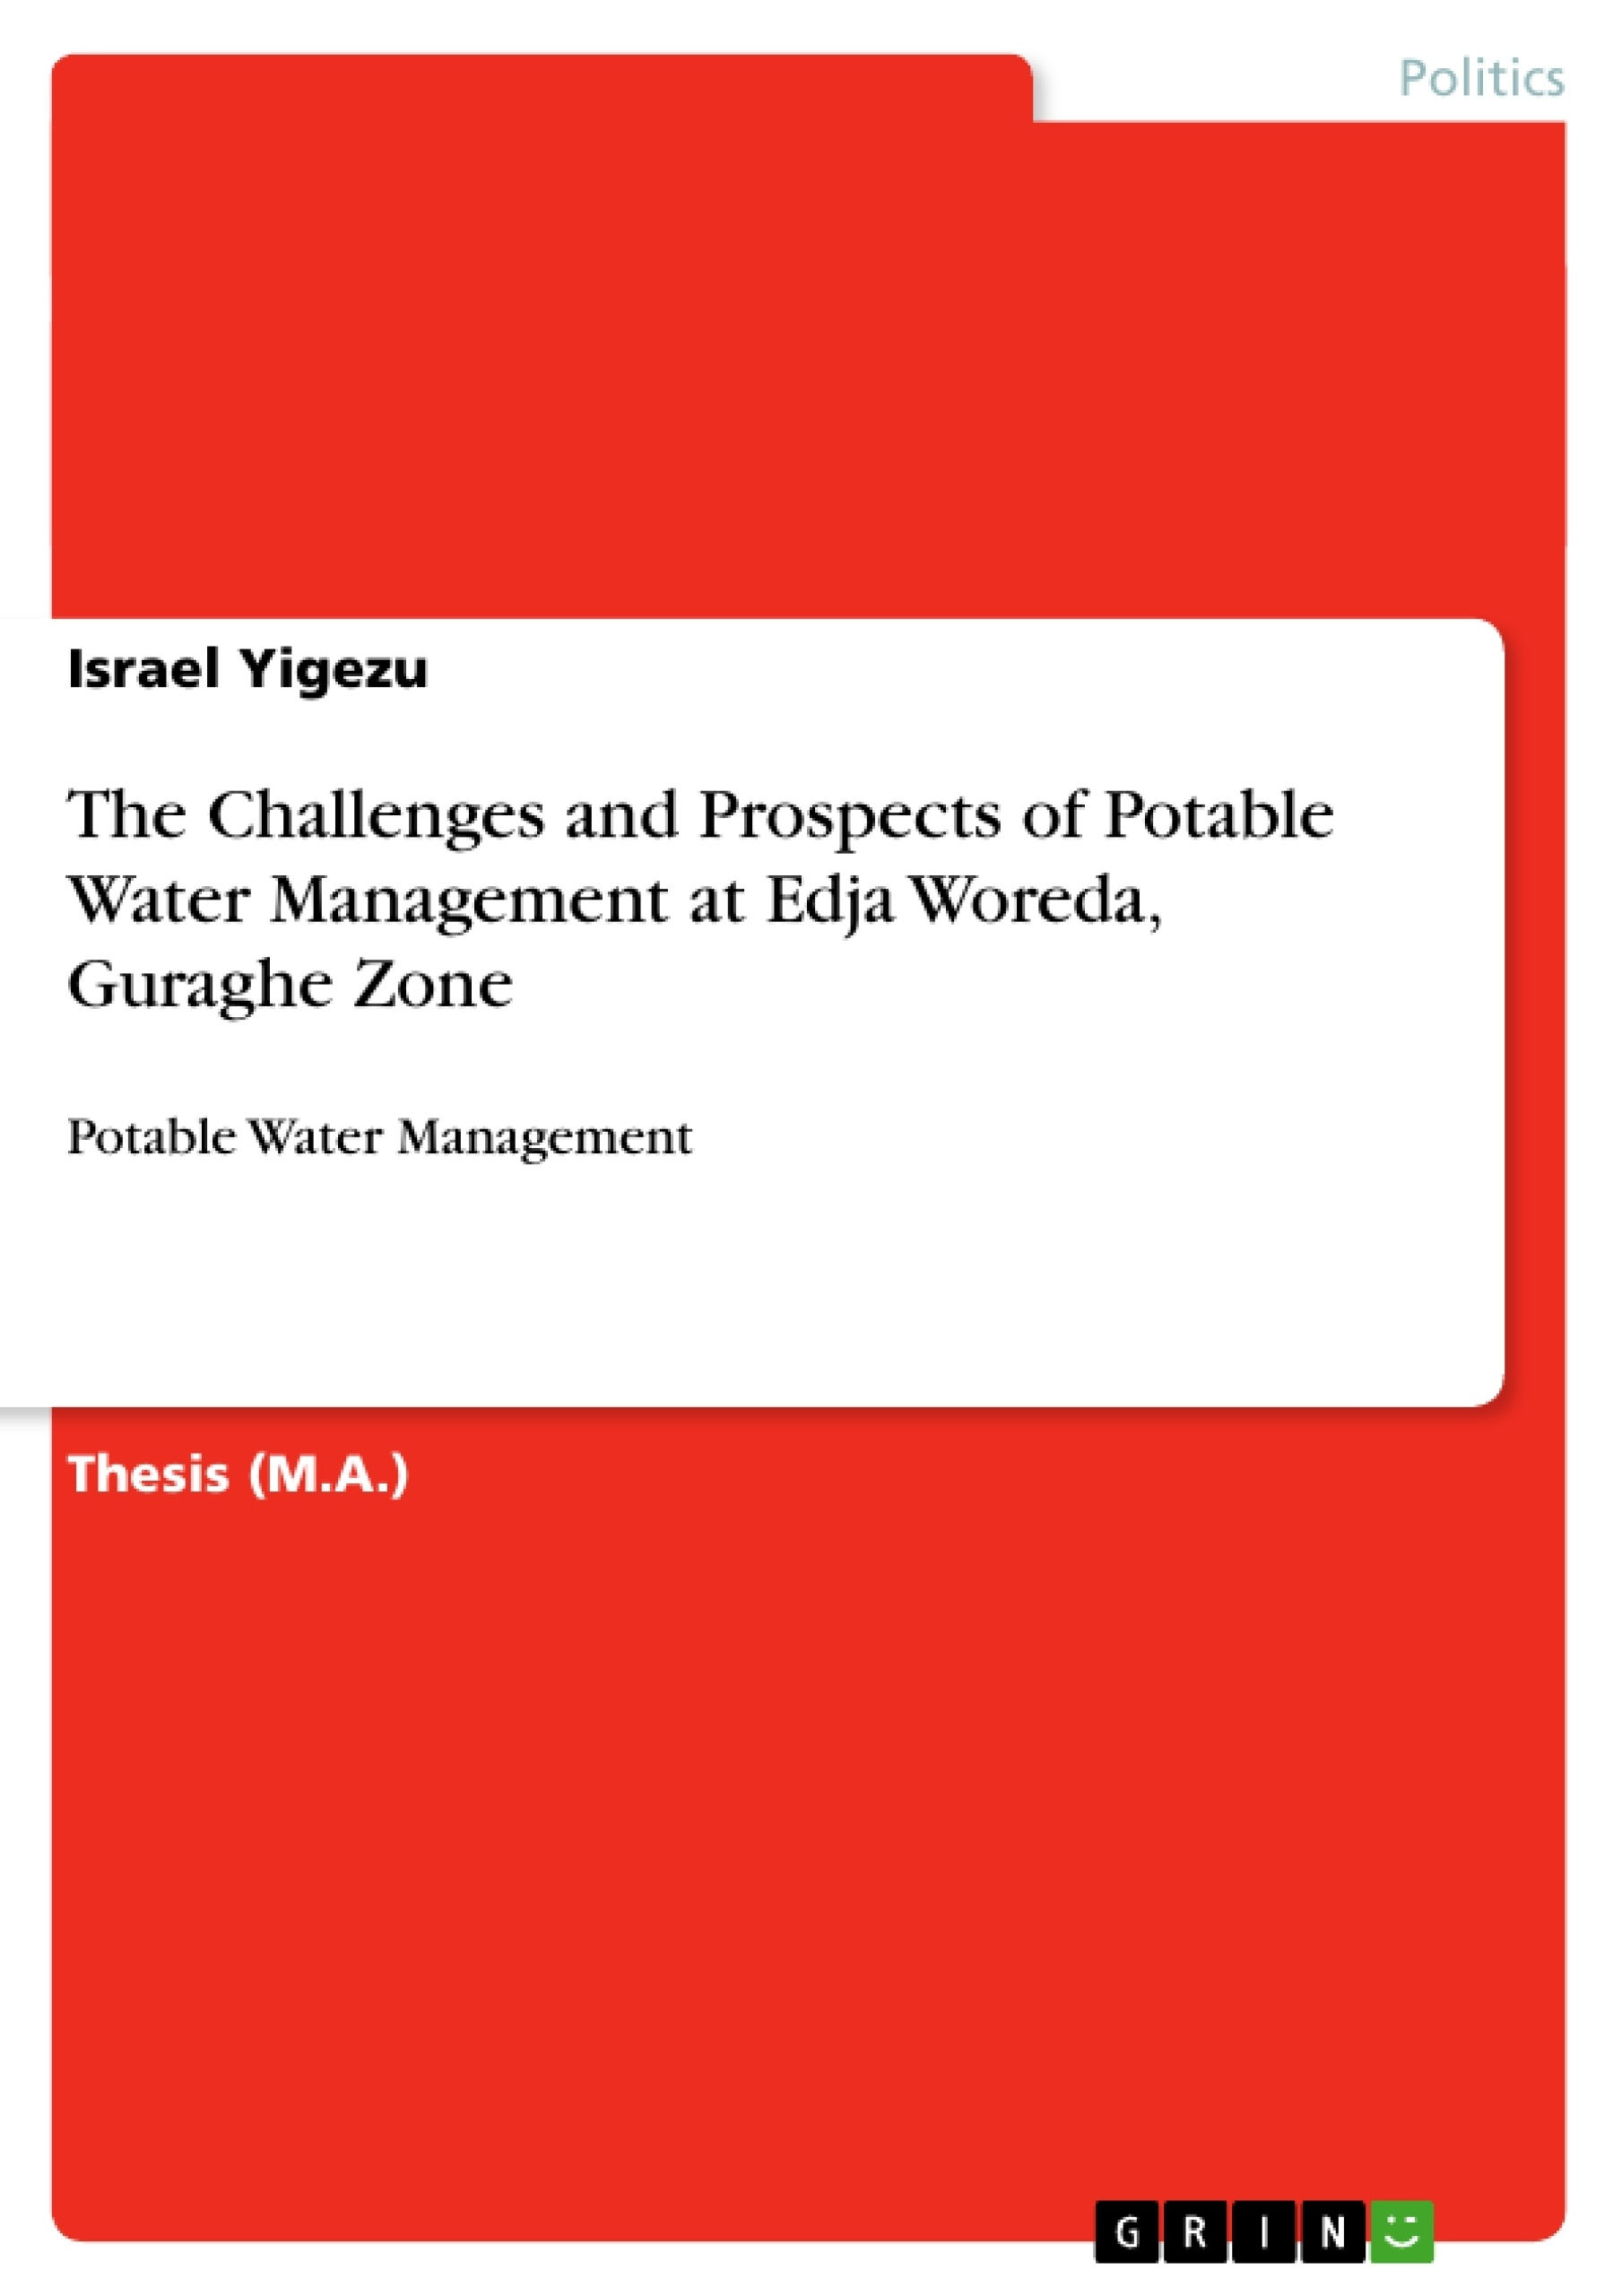 the challenges and prospects of potable water management at edja the challenges and prospects of potable water management at edja publish your master s thesis bachelor s thesis essay or term paper